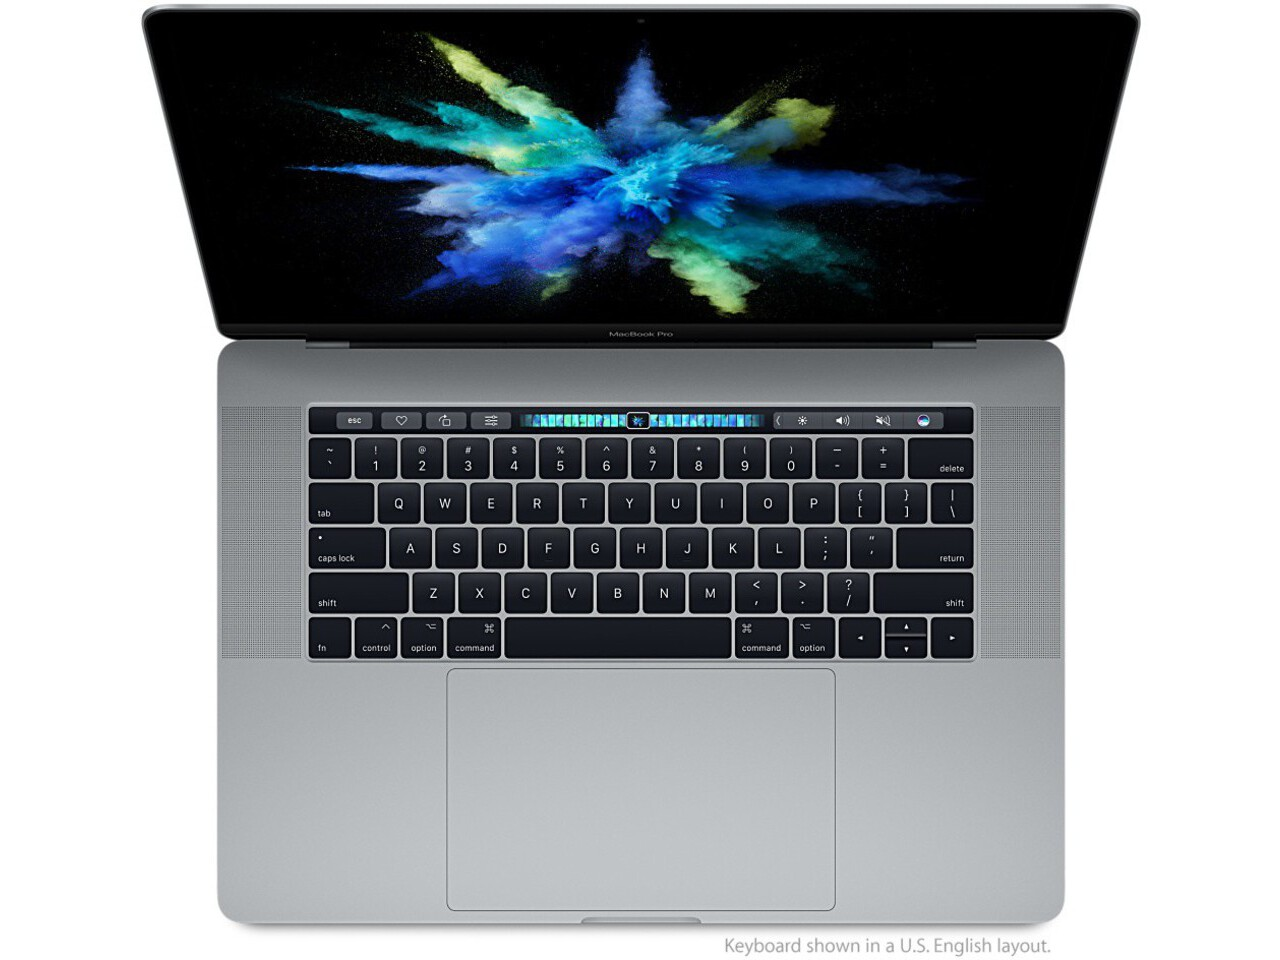 macbook pro 15 inch touch bar 2017 space gray